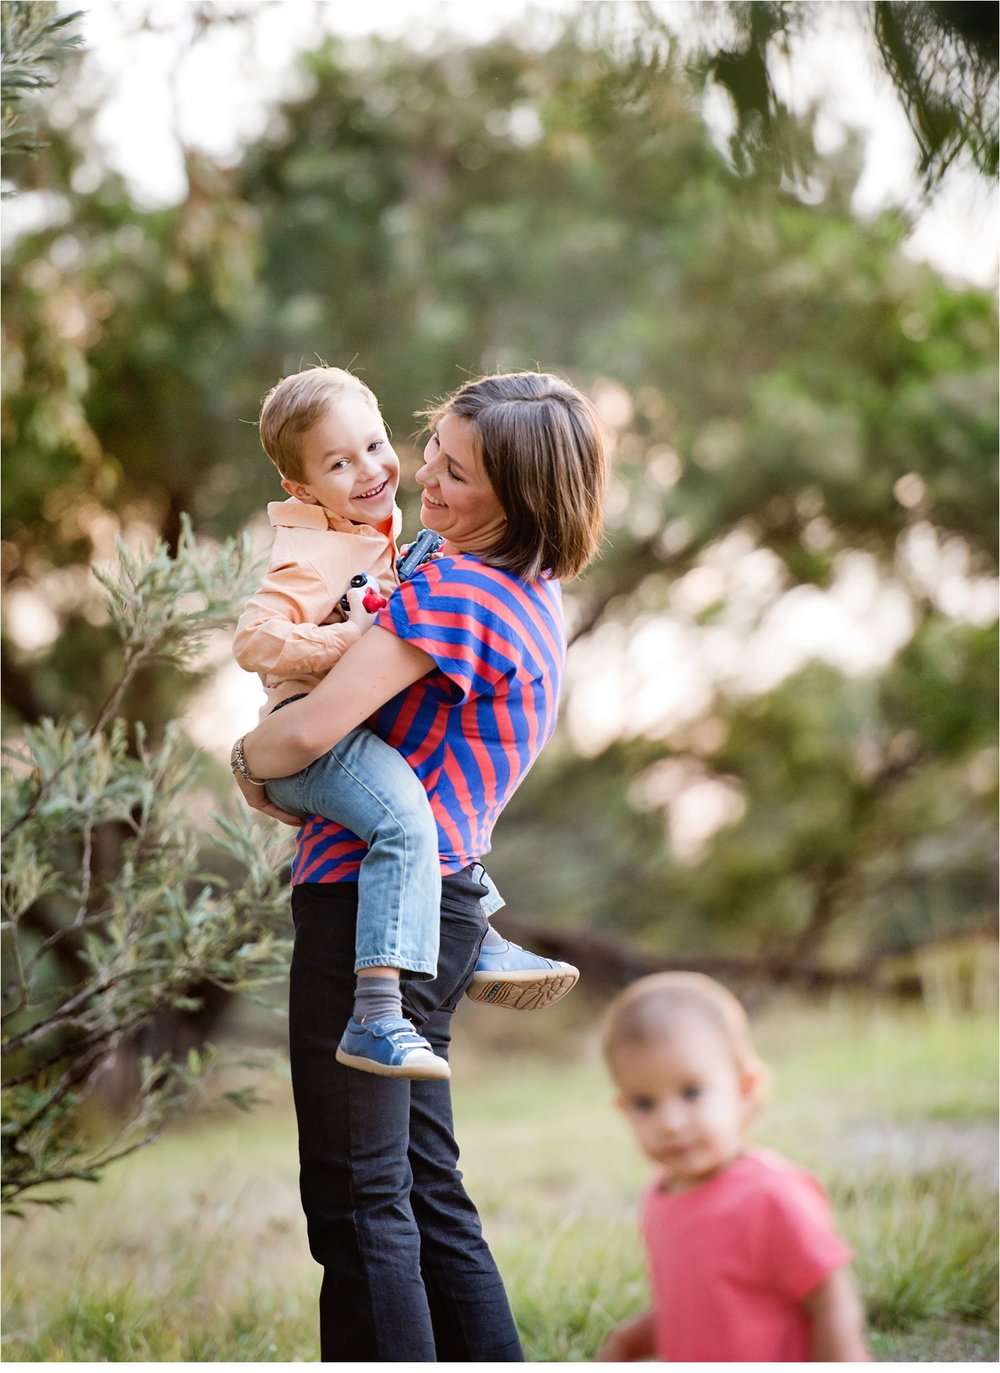 Bec-Stewart-Family-and-children-Lifestyle-Photographer-city-of-casey-melbourne-14.jpg